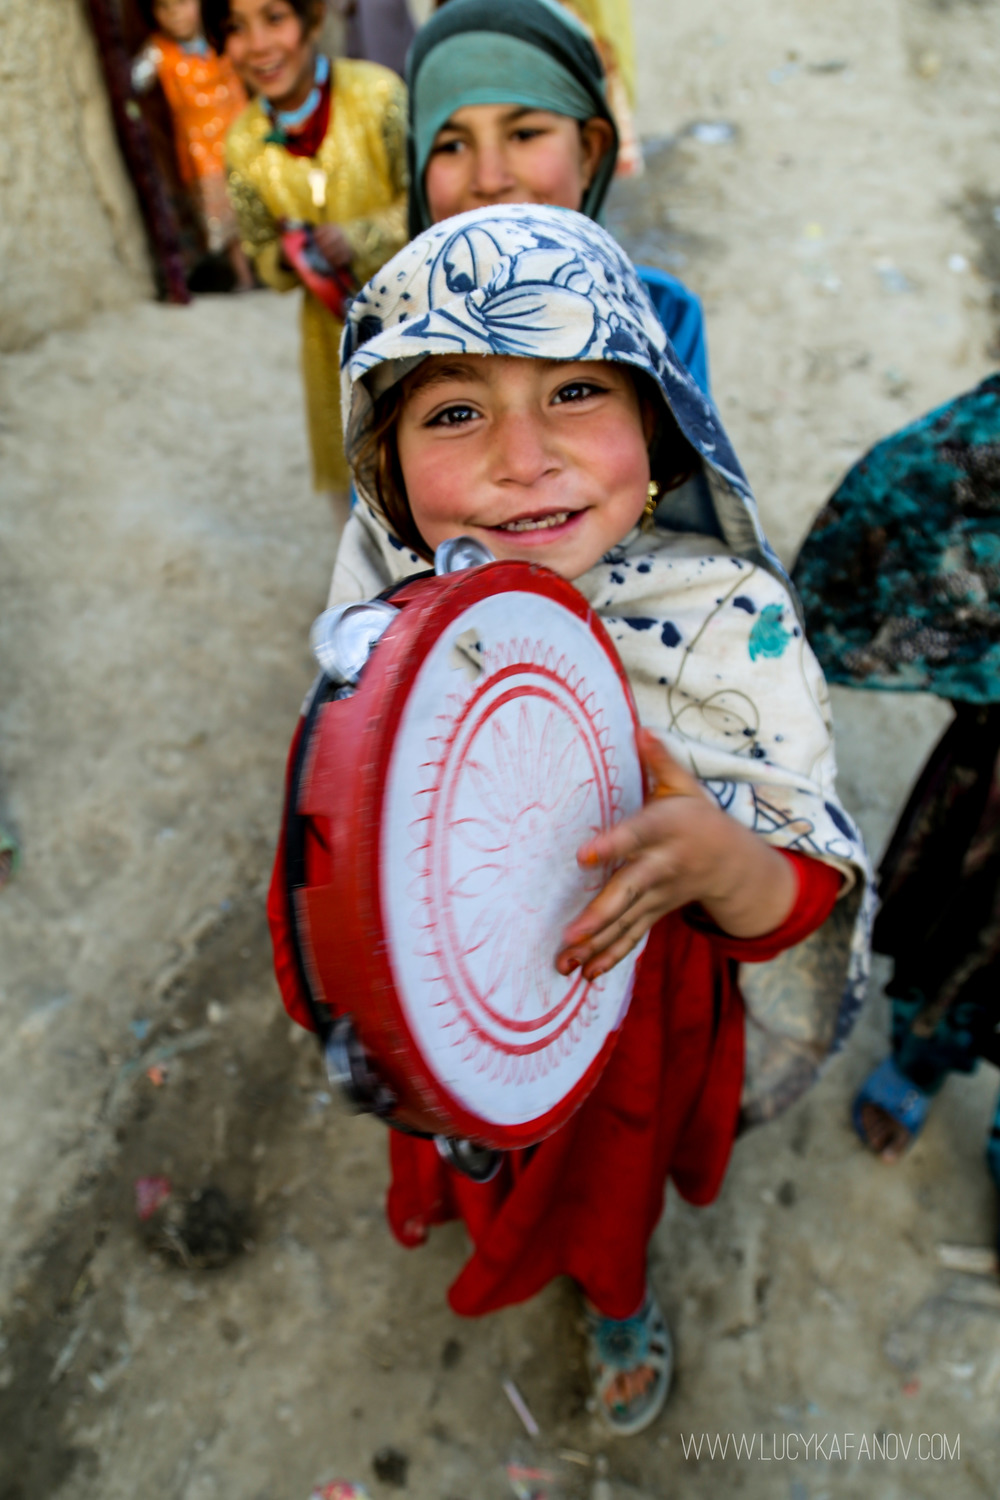 A young girl plays the tambourine on the narrow street of the IDP camp.